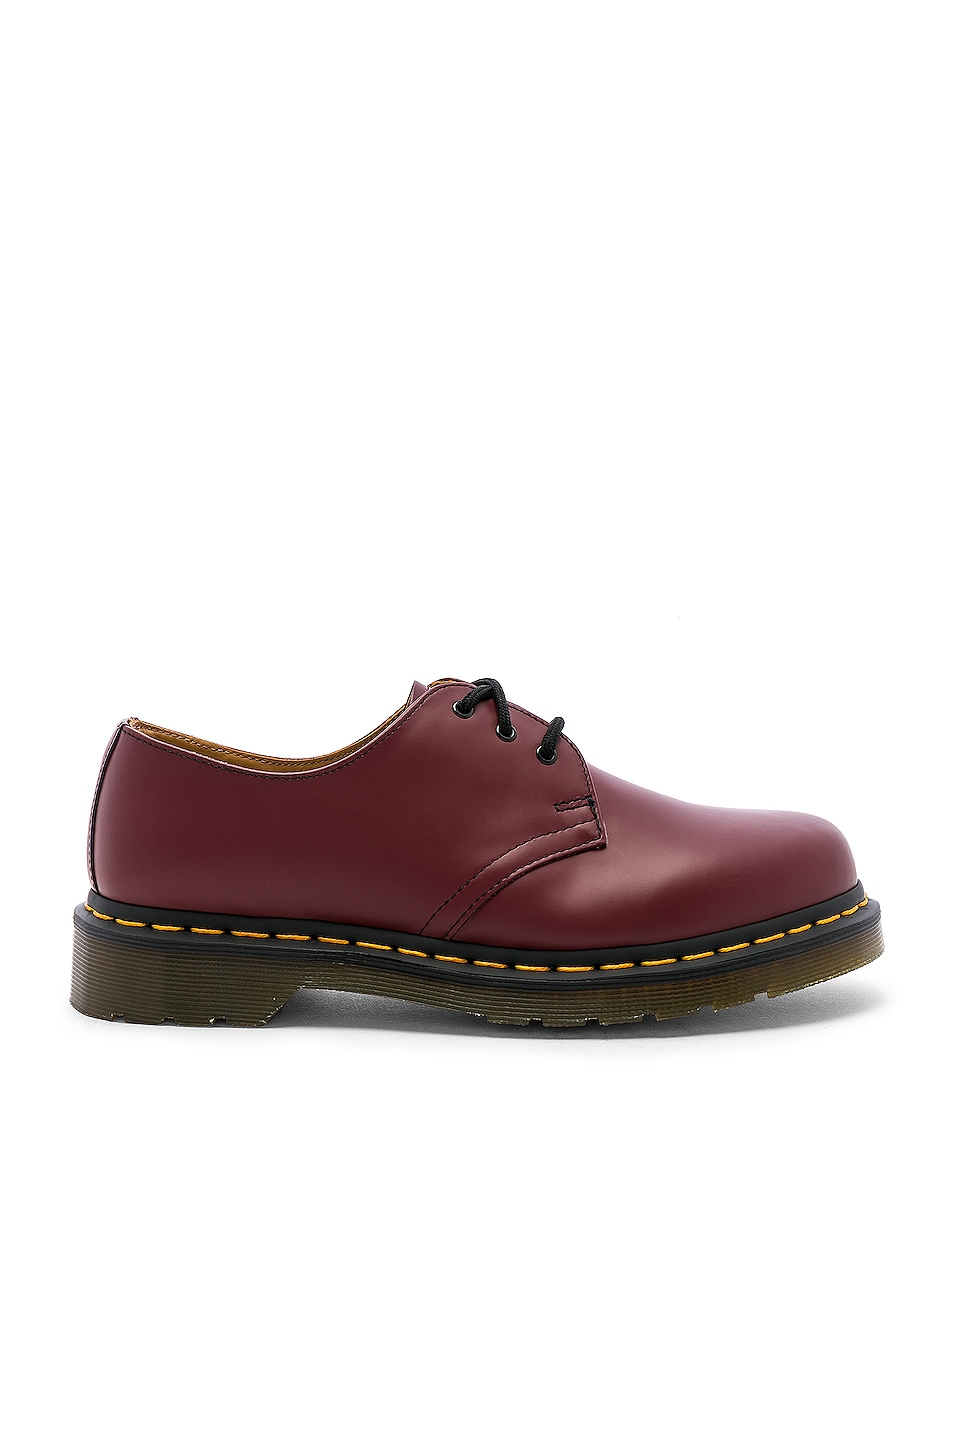 Image 1 of Dr. Martens 1461 3-Eye Shoe in Cherry Red